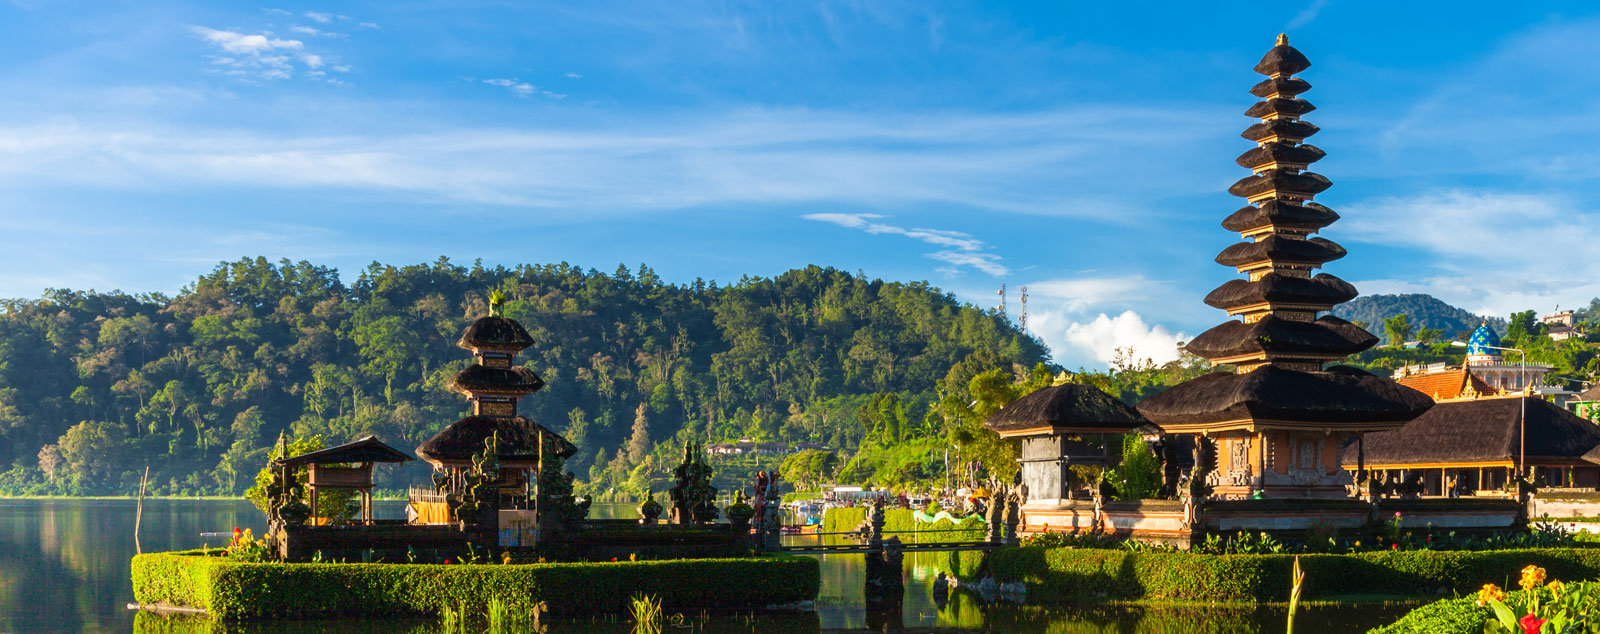 A Balinese Temple with a multi-storied roof that gets narrower as it ascends